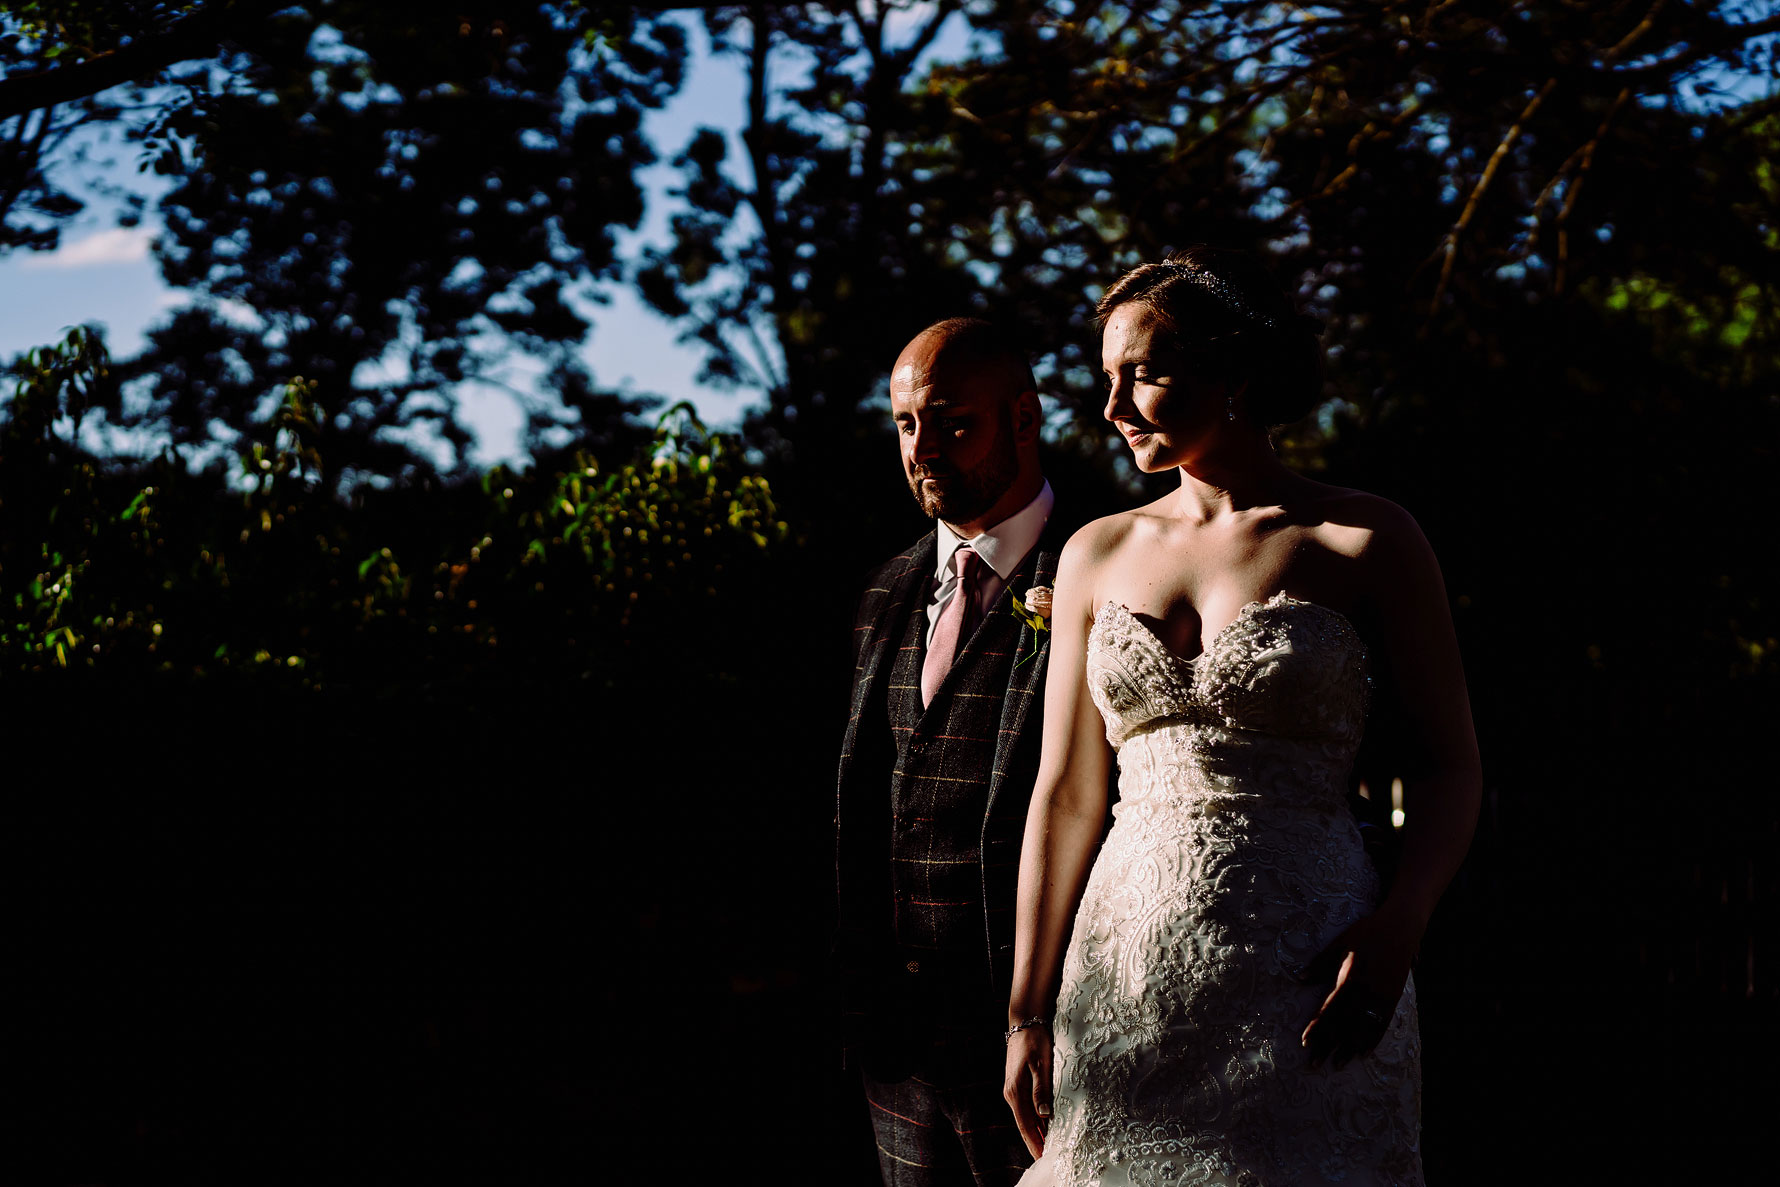 an artistic photograph of a bride and groom taken by Elliot w patching photography at Gorcott Hall.